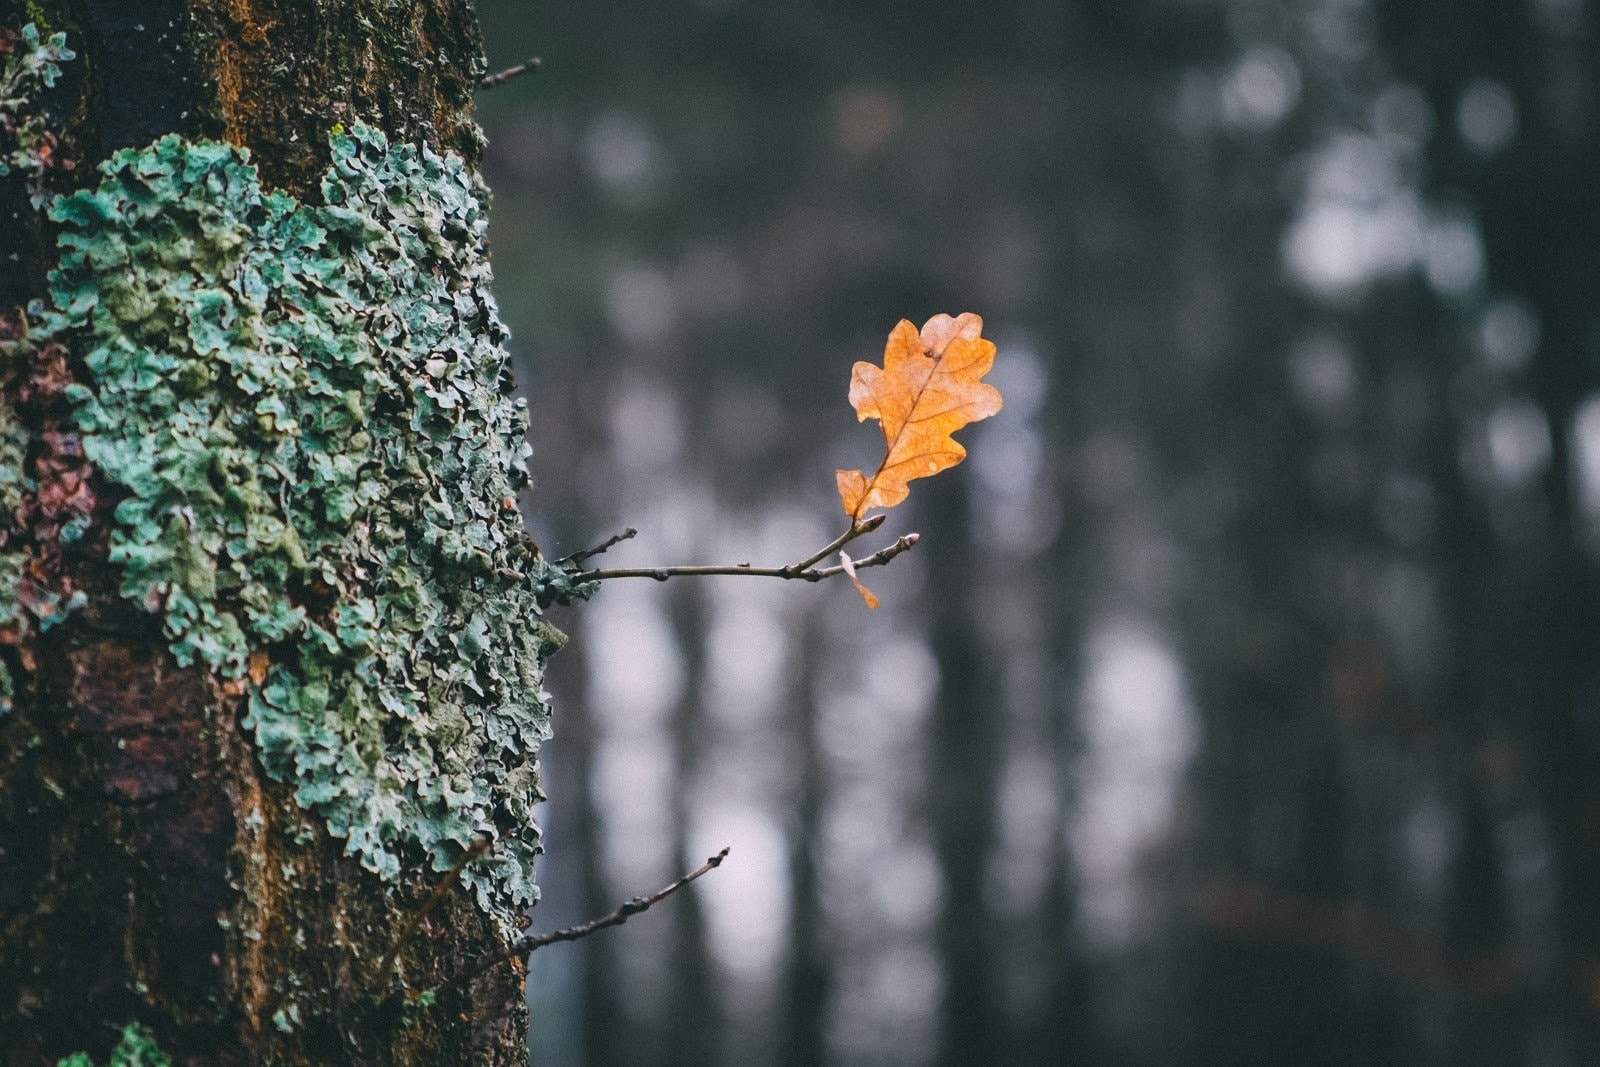 A single leaf photo as an example of depth of field by Benedikt Geyer